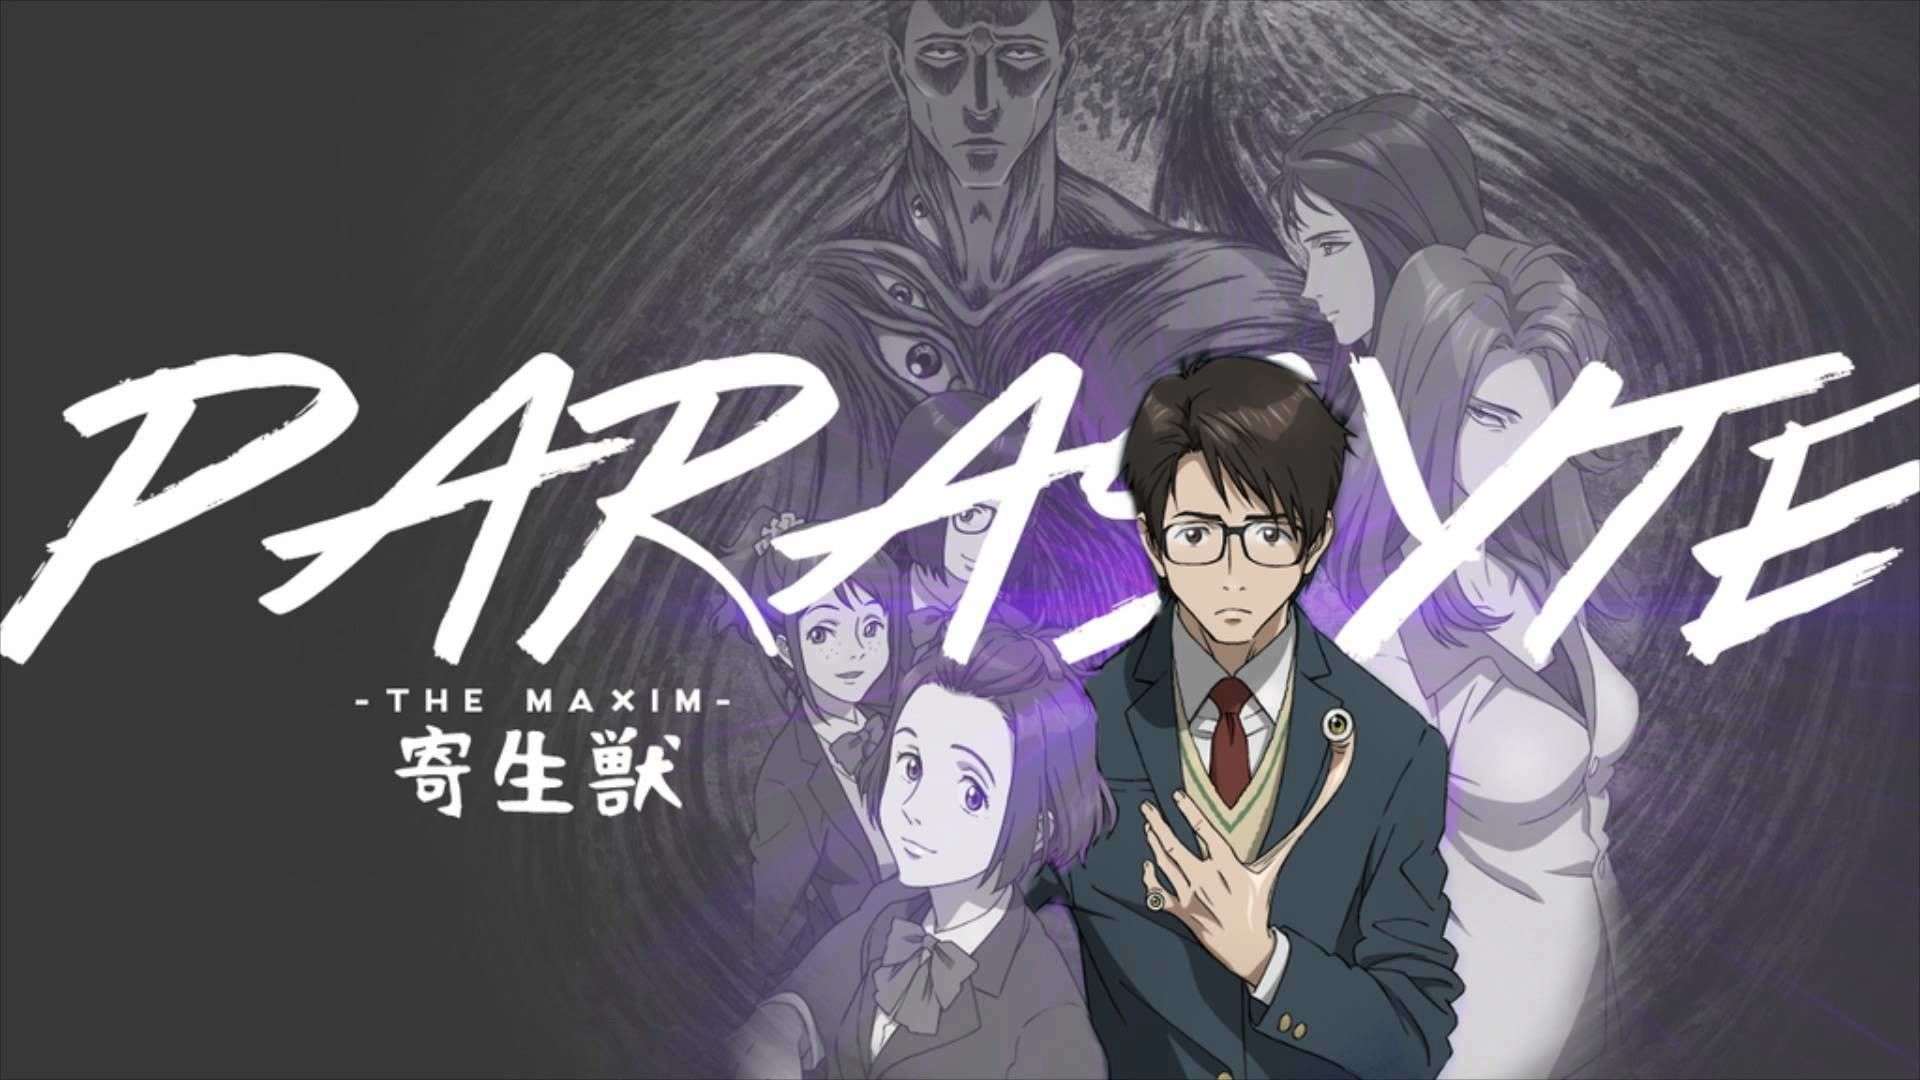 Parasyte Wallpapers - Top Free Parasyte Backgrounds ...